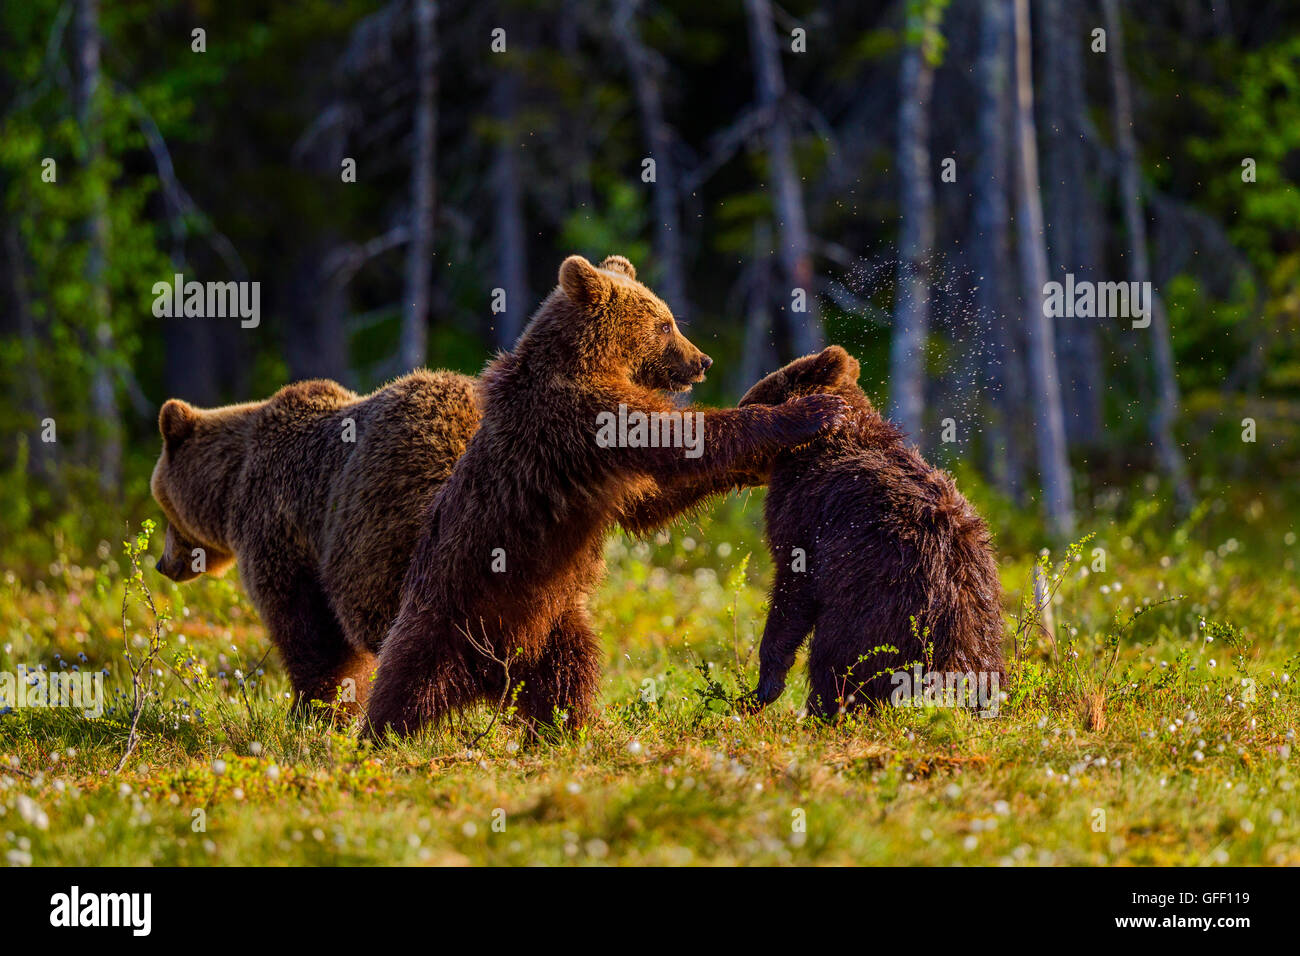 Brown bear cubs playing with each other, Finland. - Stock Image